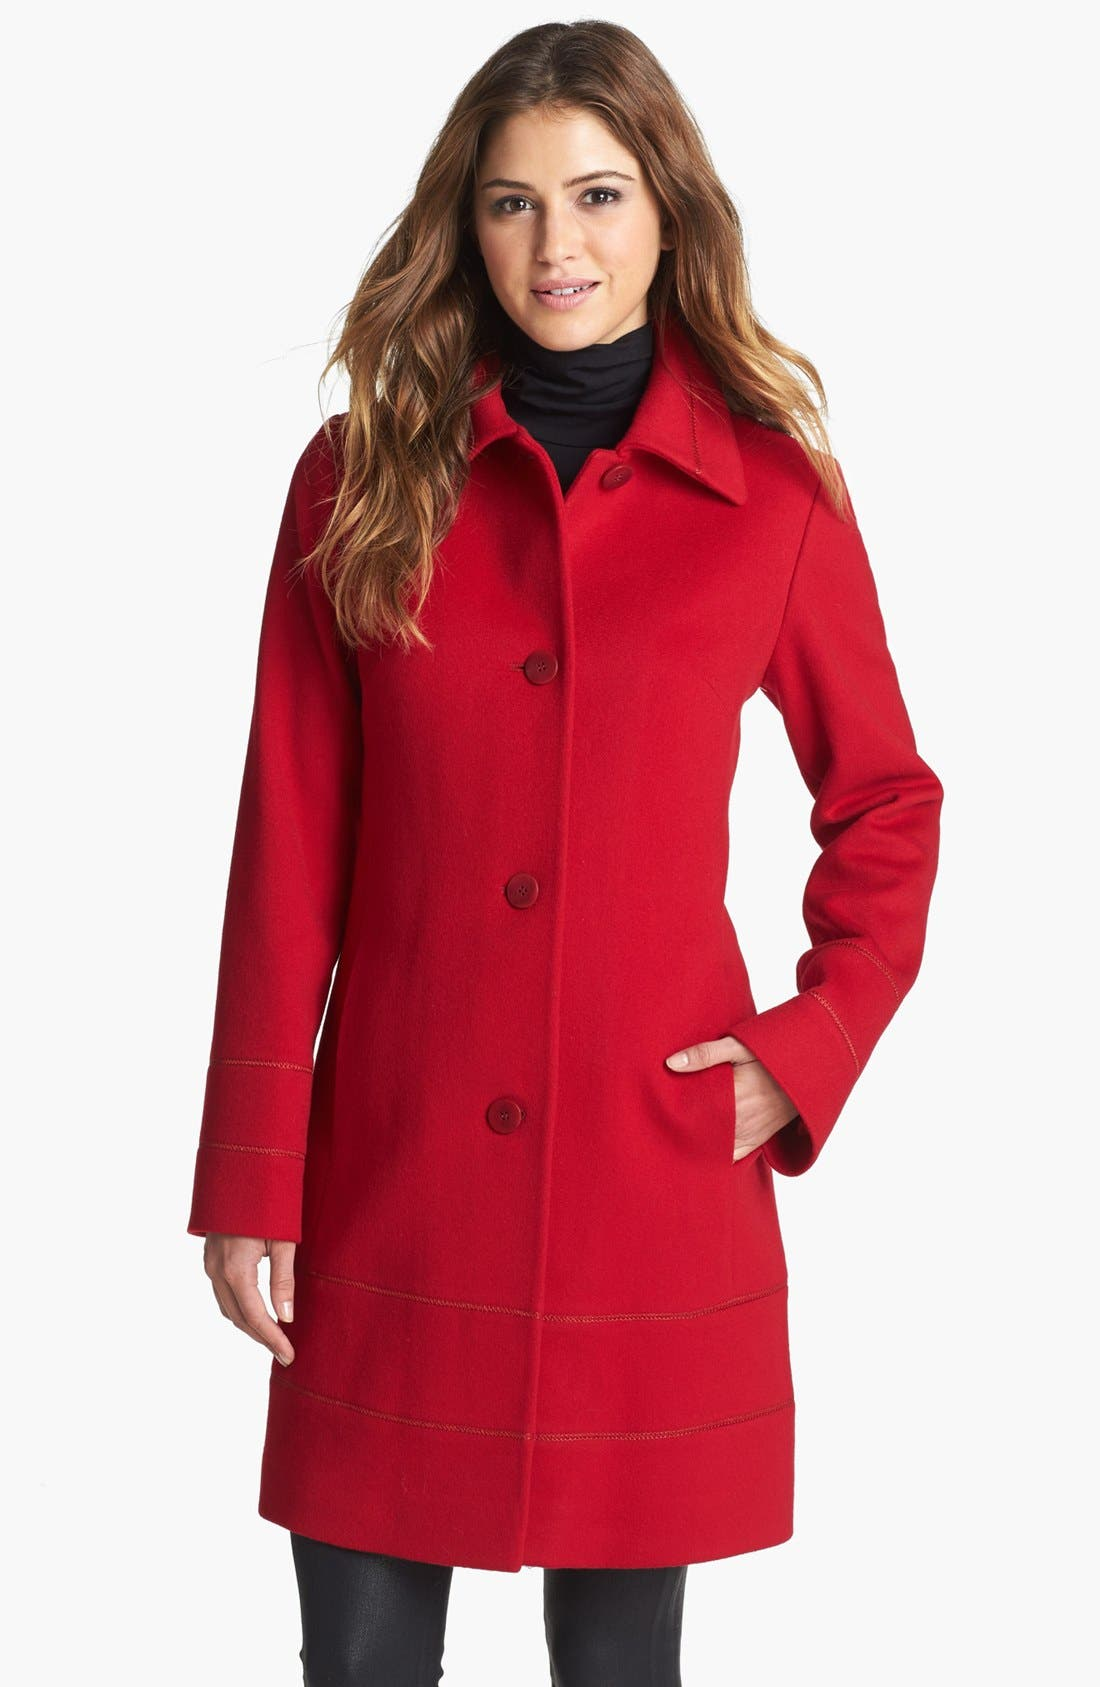 Alternate Image 1 Selected - Fleurette Stitch Trim Loro Piana Wool Coat (Petite)